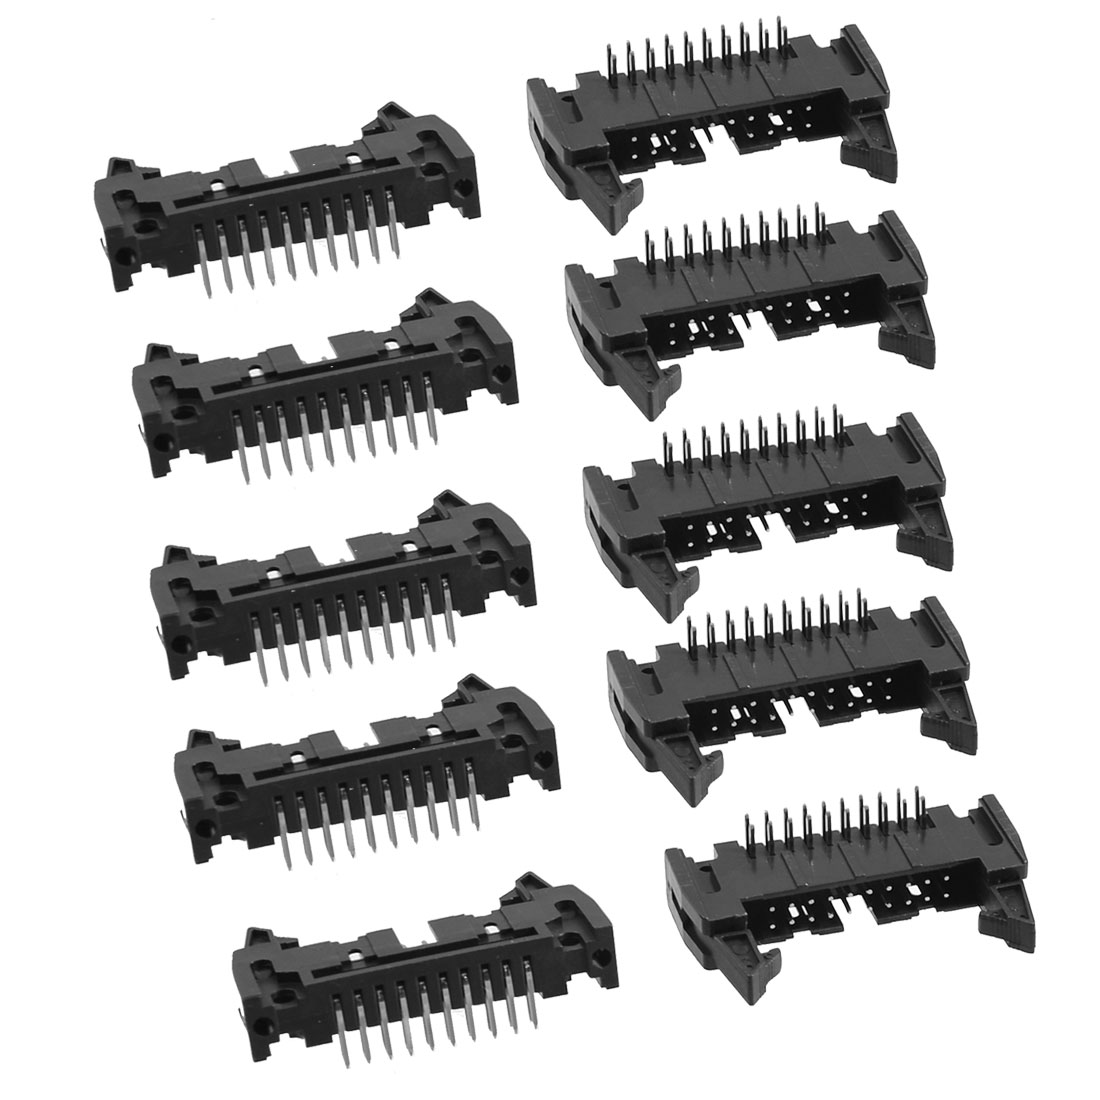 Unique Bargains 10 Pcs 2.54mm Pitch 20 Pins Dual Rows Right Angle IDC Box Connector Headers